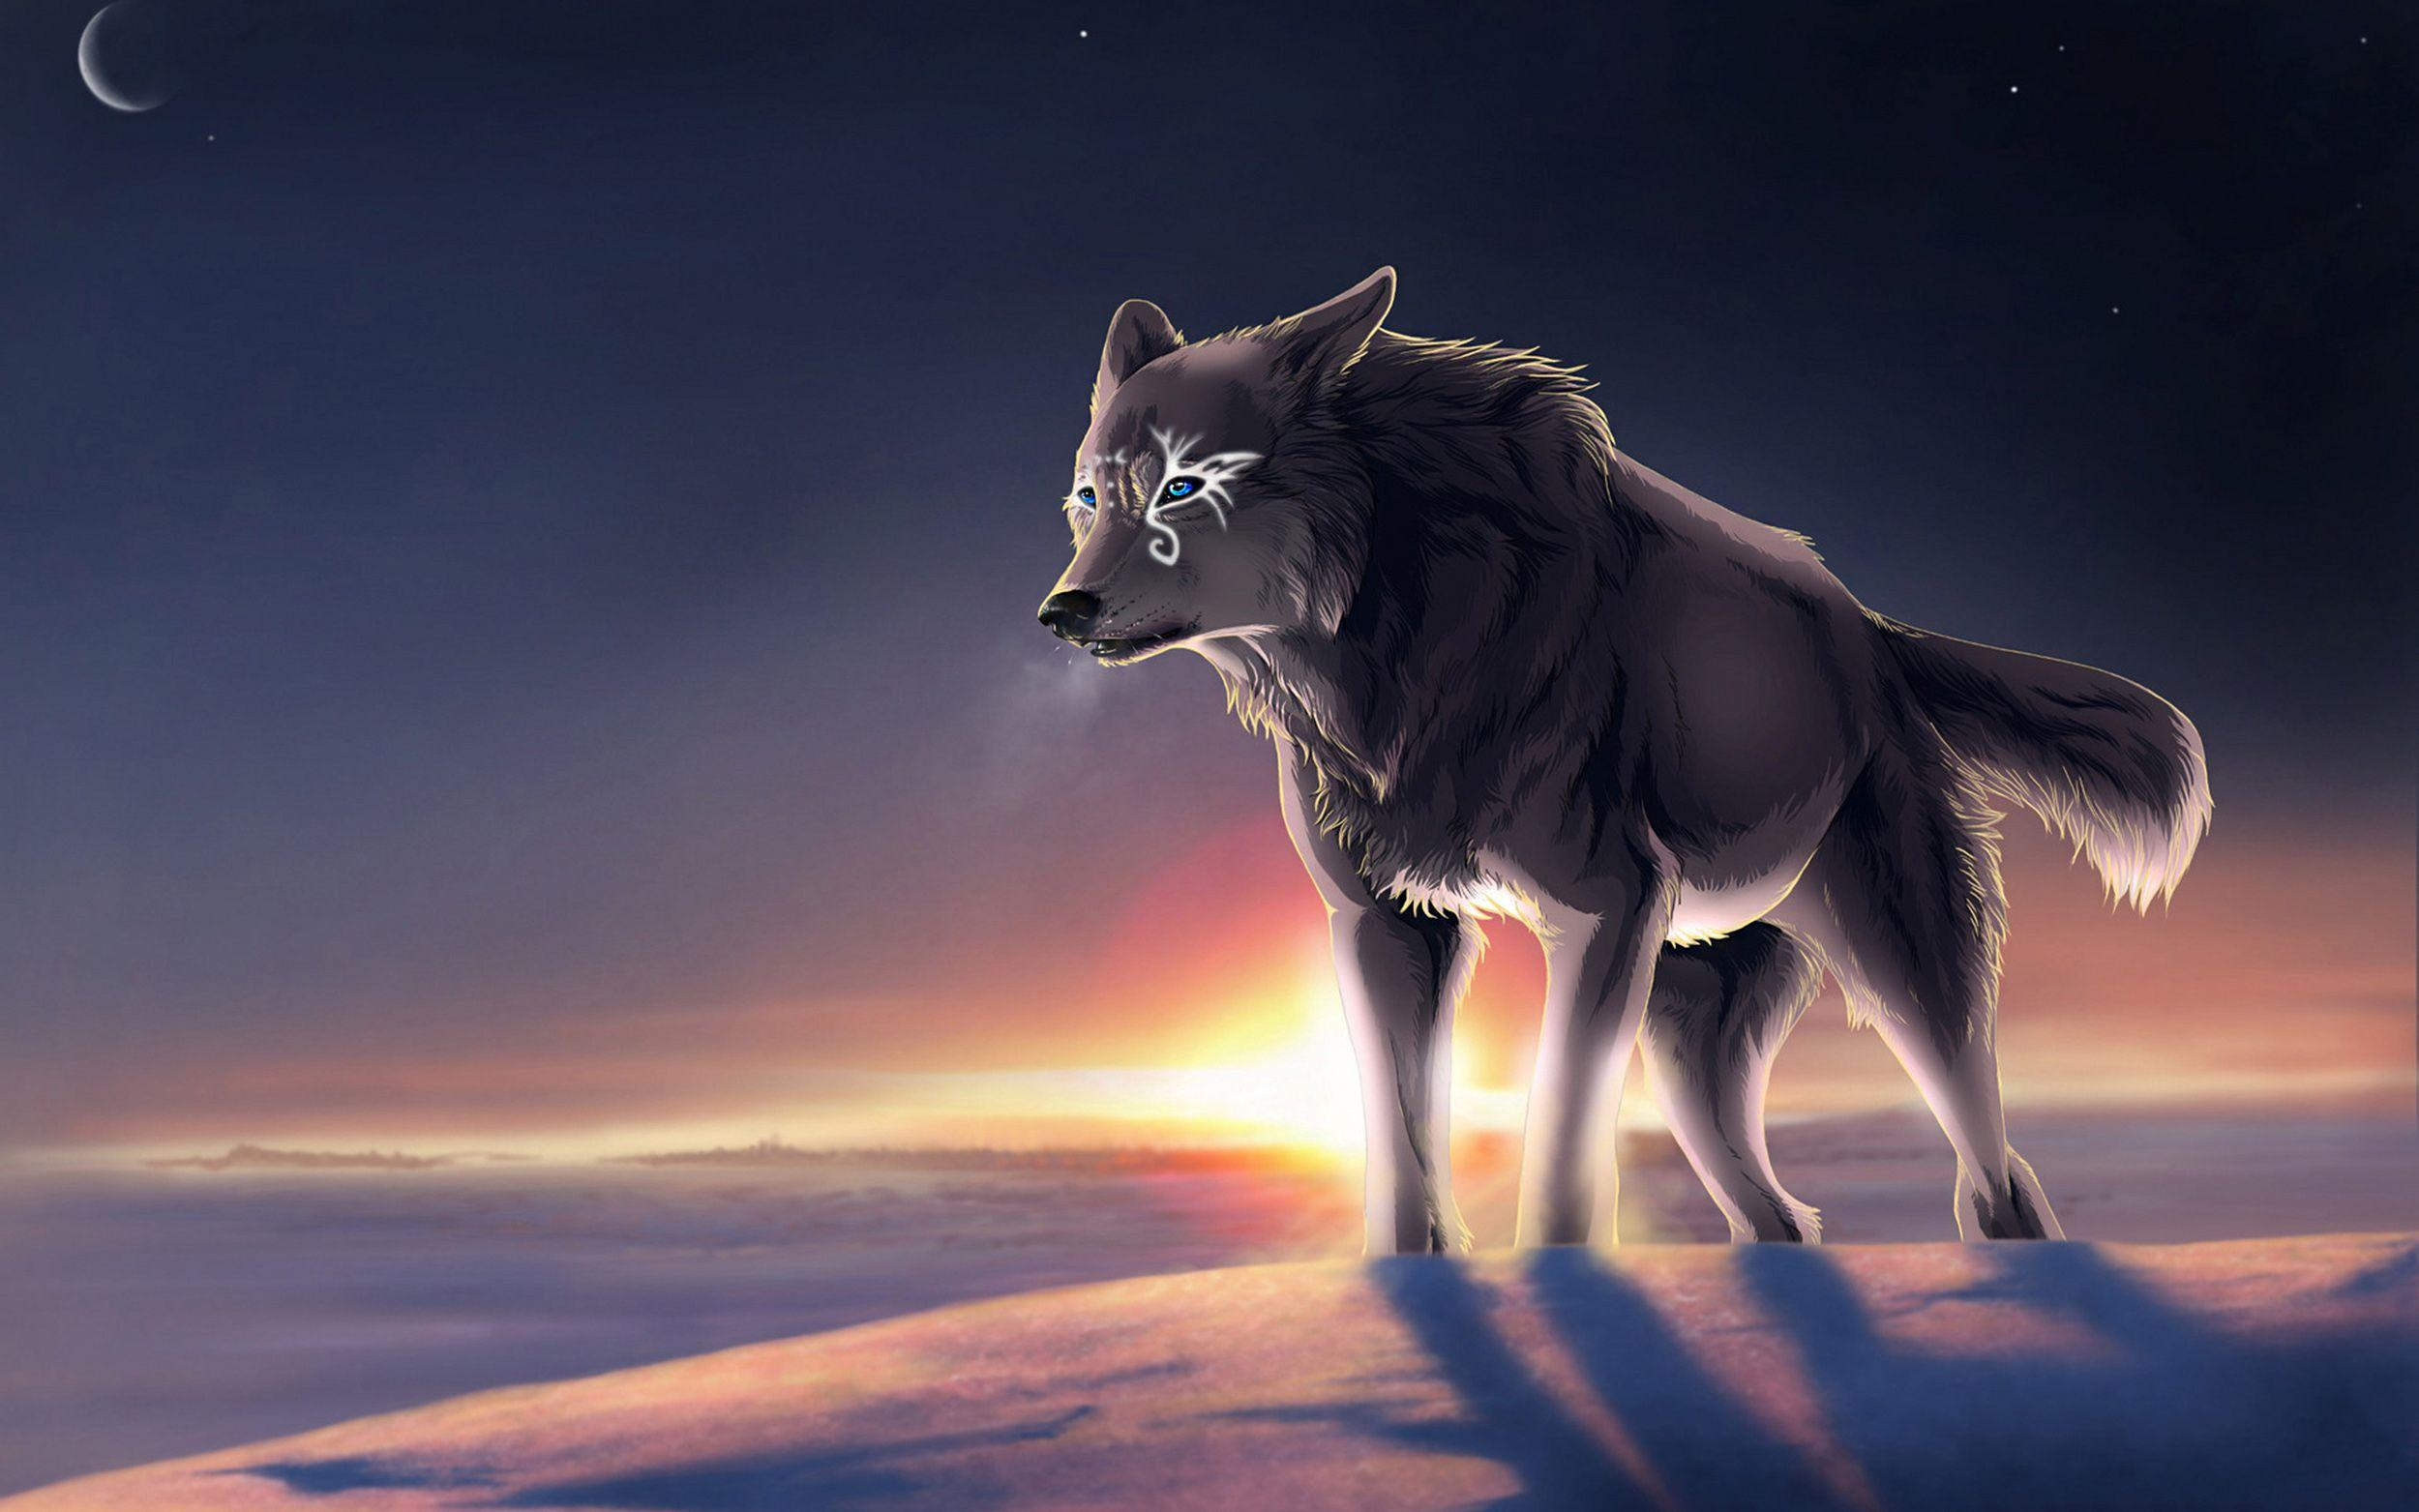 Finding Quality Anime Wolf Wallpaper Background for Your Desktop